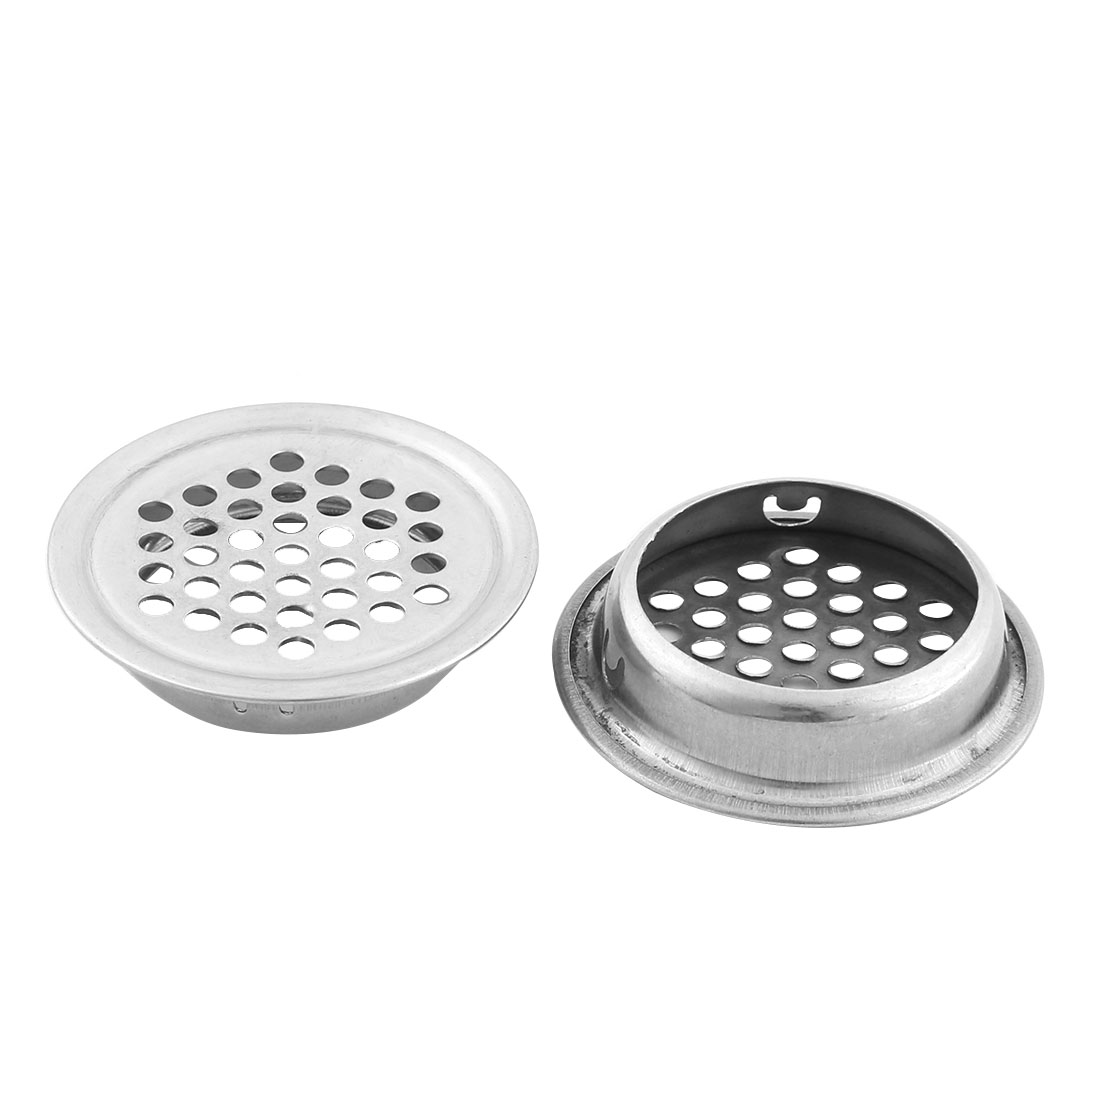 Household Metal Round Perforated Mesh Design Sink Strainer 3.5cm Diameter 2 Pcs